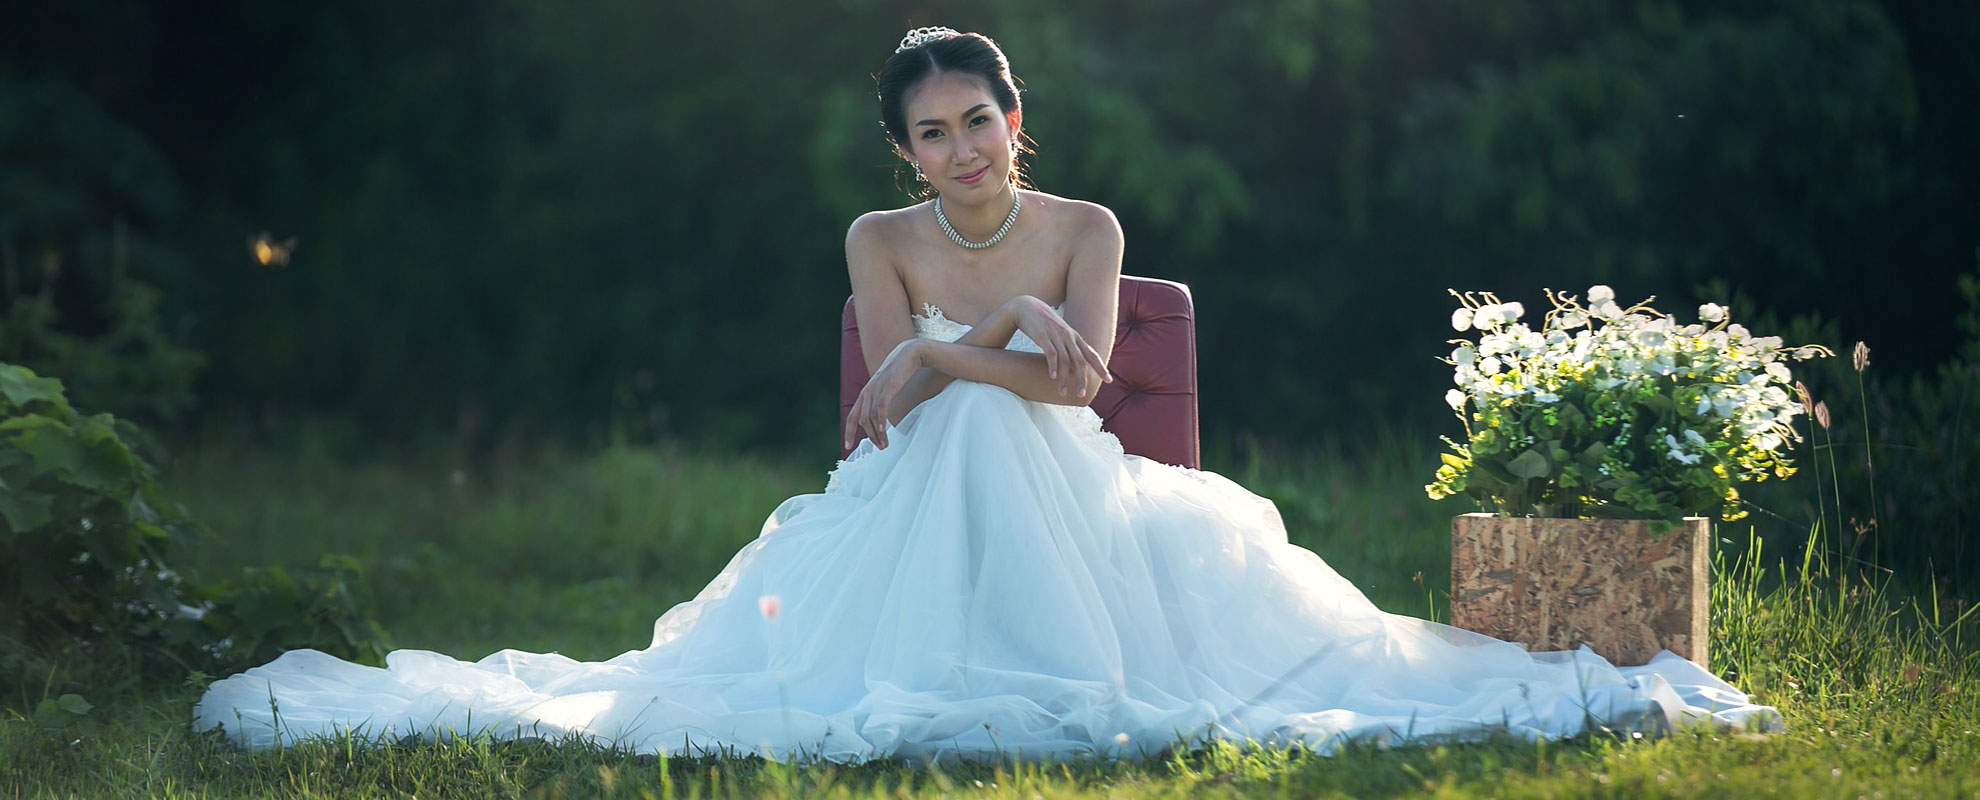 a young bride in a wedding dress sitting outside in a green field